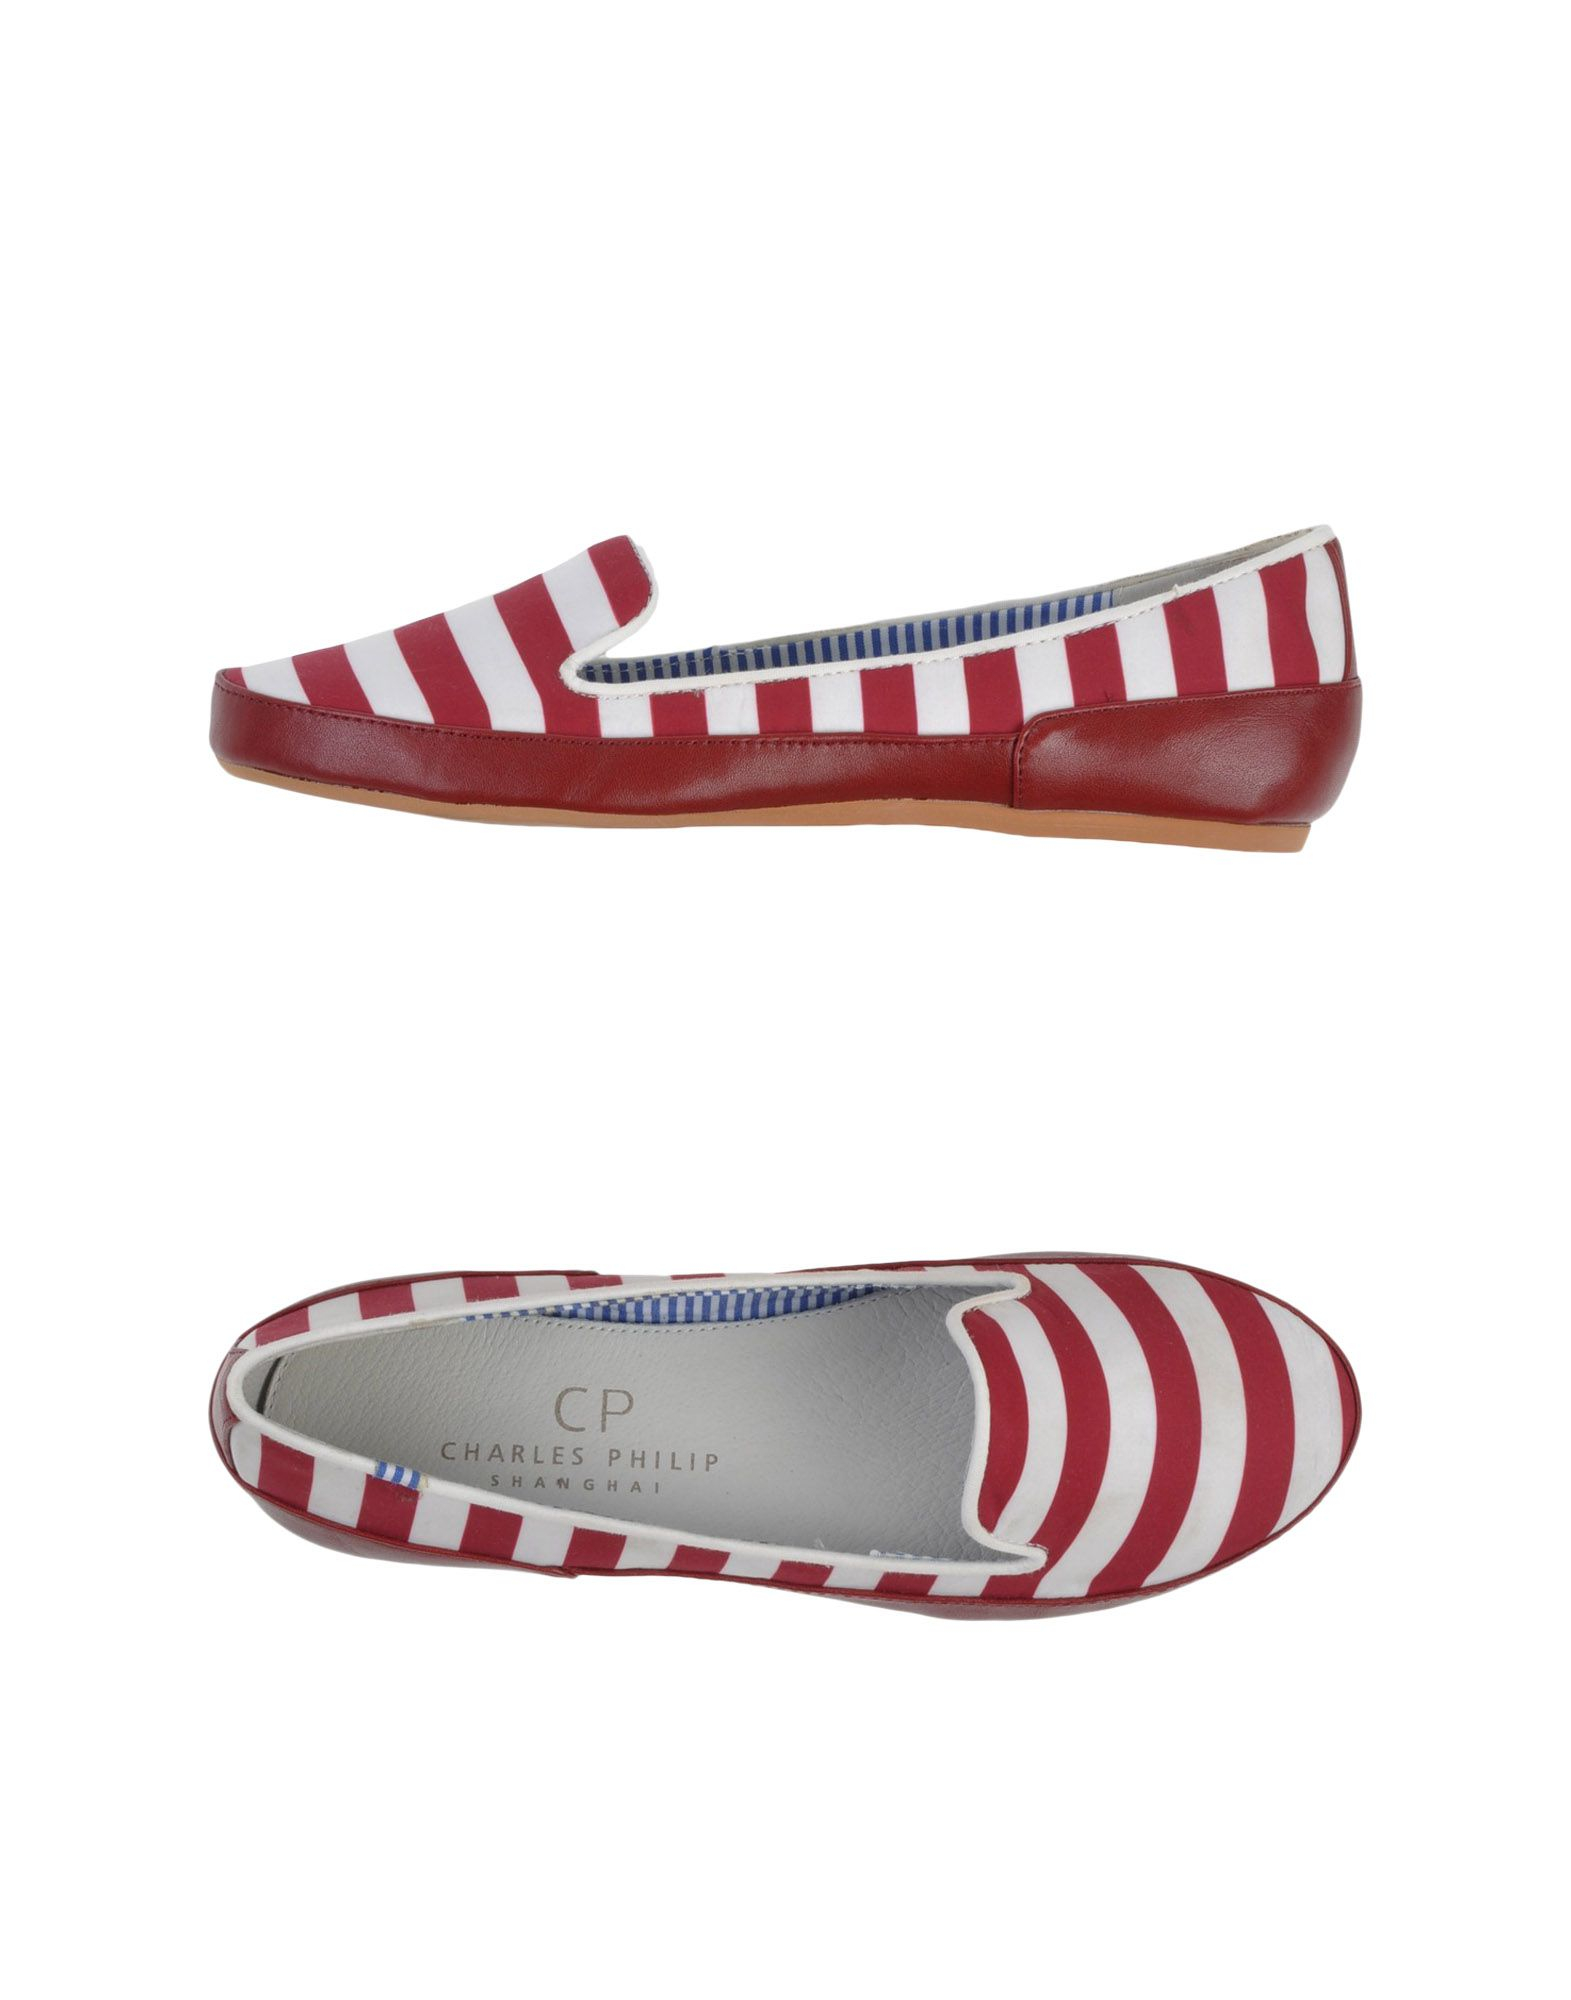 Lyst Cp Charles Philip Shanghai Loafer In Red